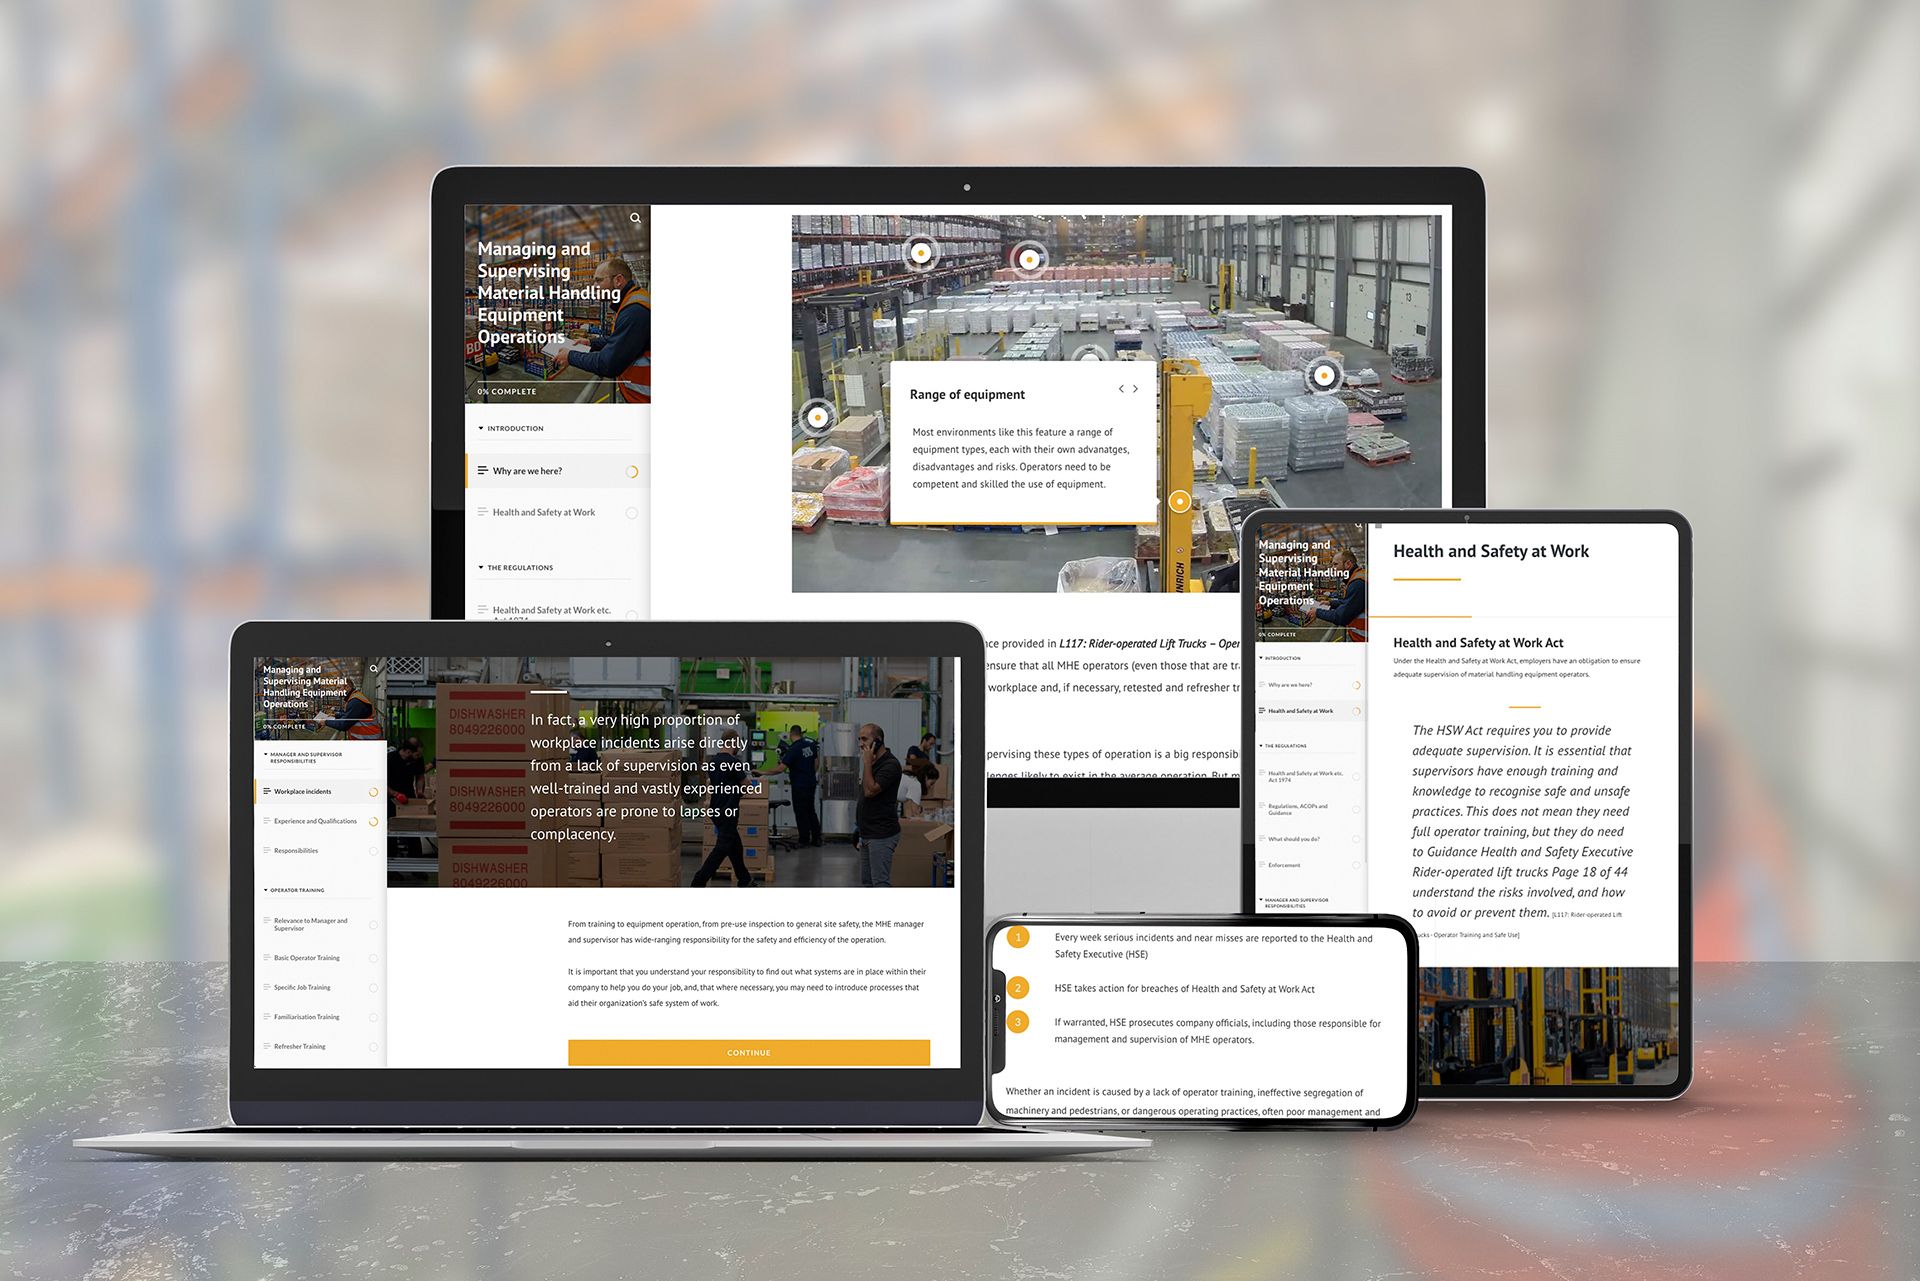 New RTITB eLearning for Managers and Supervisors offers advice on how to manage lift truck operations effectively